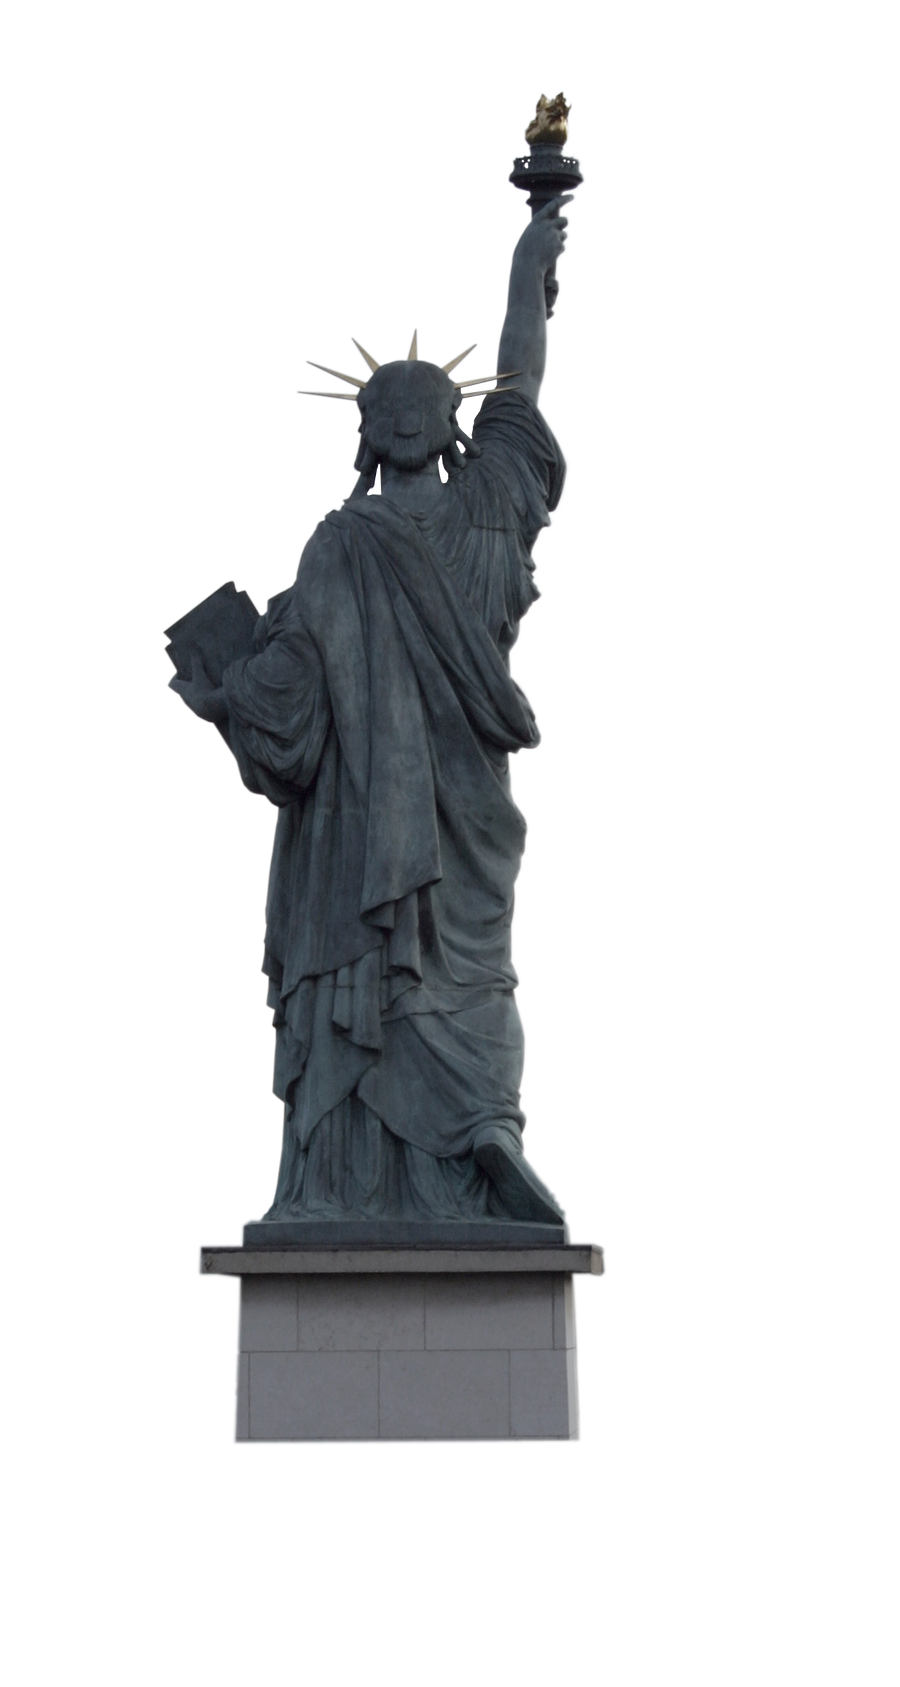 Statue of Liberty png by Rafido on DeviantArt